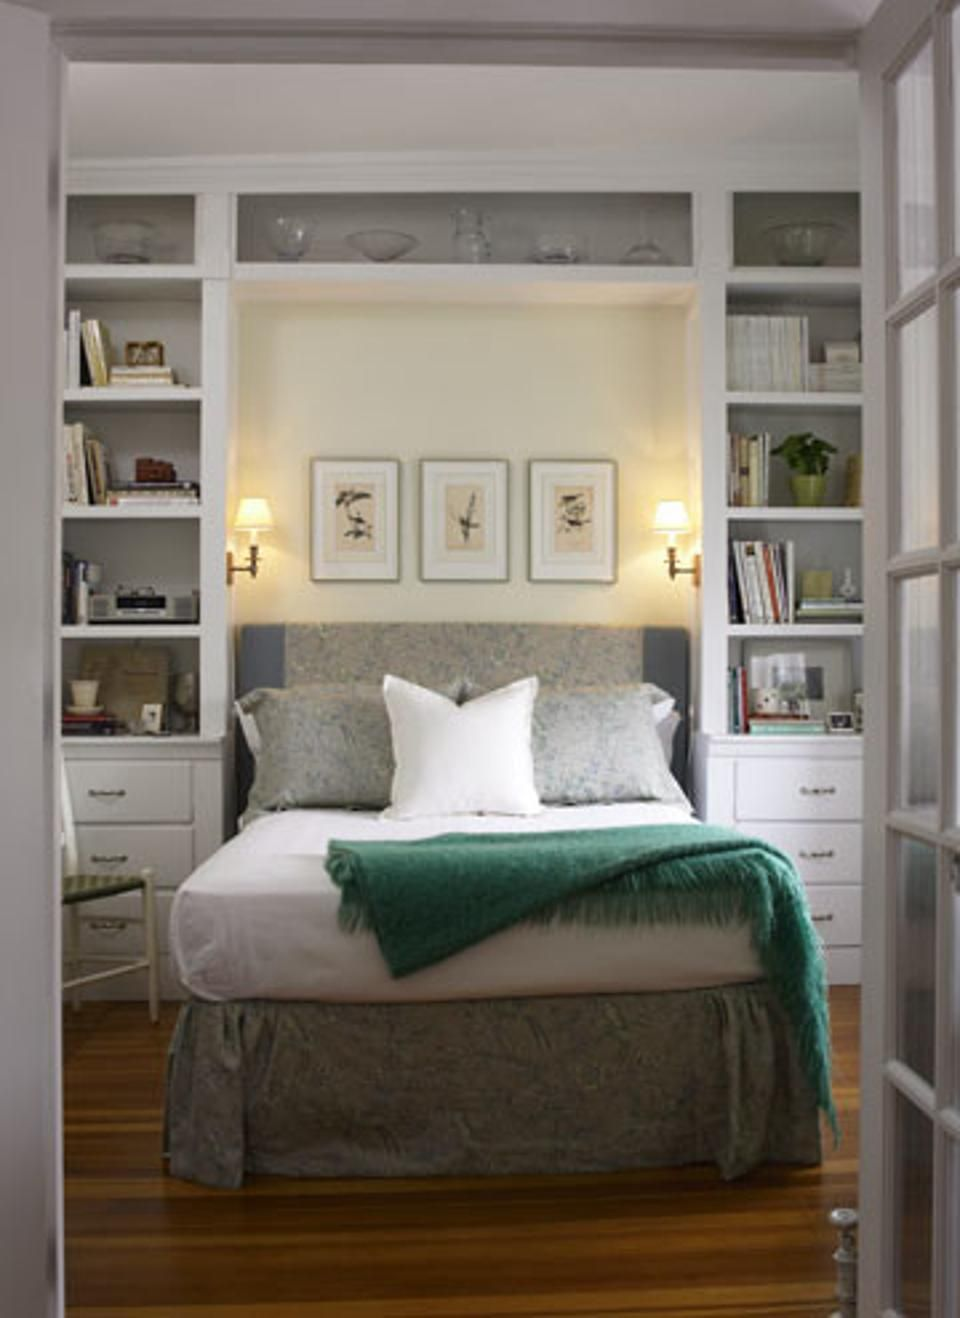 How To Maximize Space In A Small Bedroom 10 tips to make a small bedroom look great | compact, boudoir and